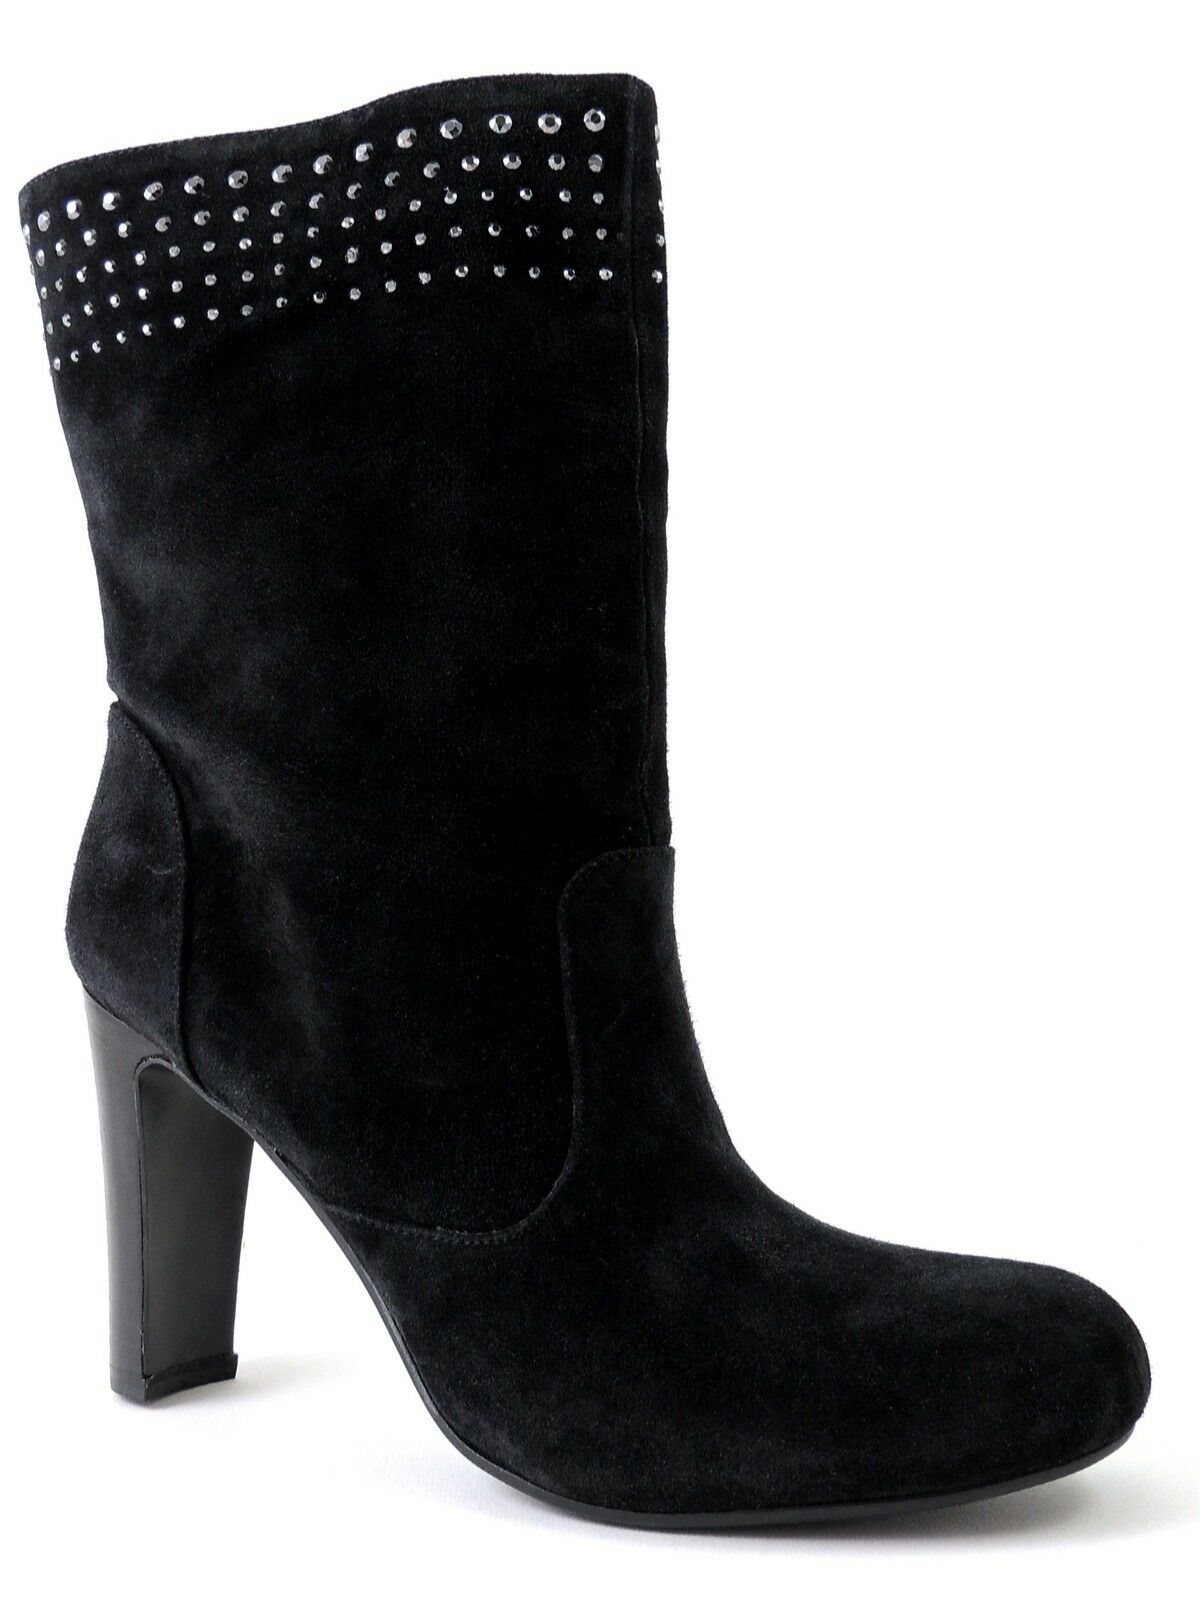 Enzo Angiolini Women's Kissmet Boots Black Suede Studded Size 8 M